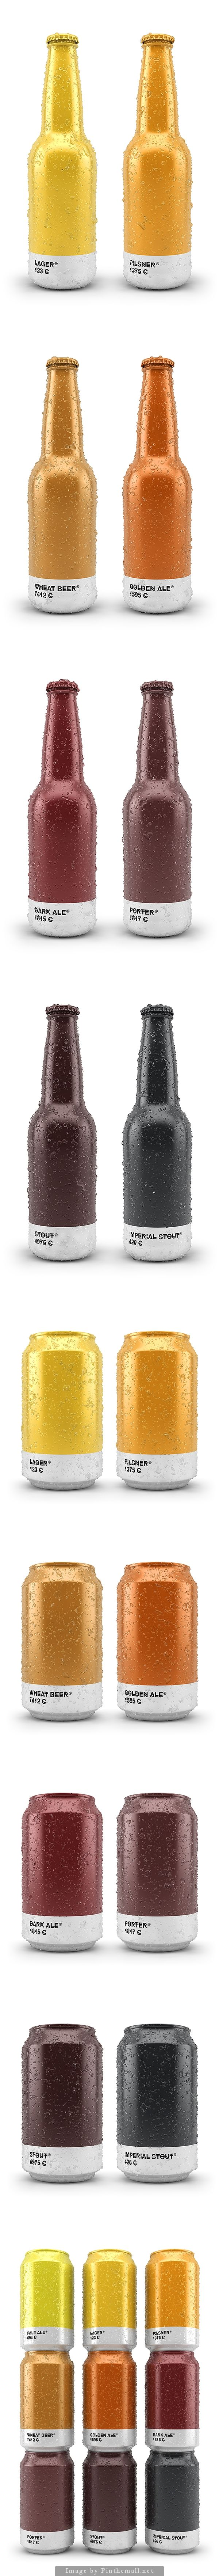 Beer packaging takes inspiration from Pantone #inspiration Torso Vertical Inspirations Blogging inspirational work, a visual source for Torso Vertical.